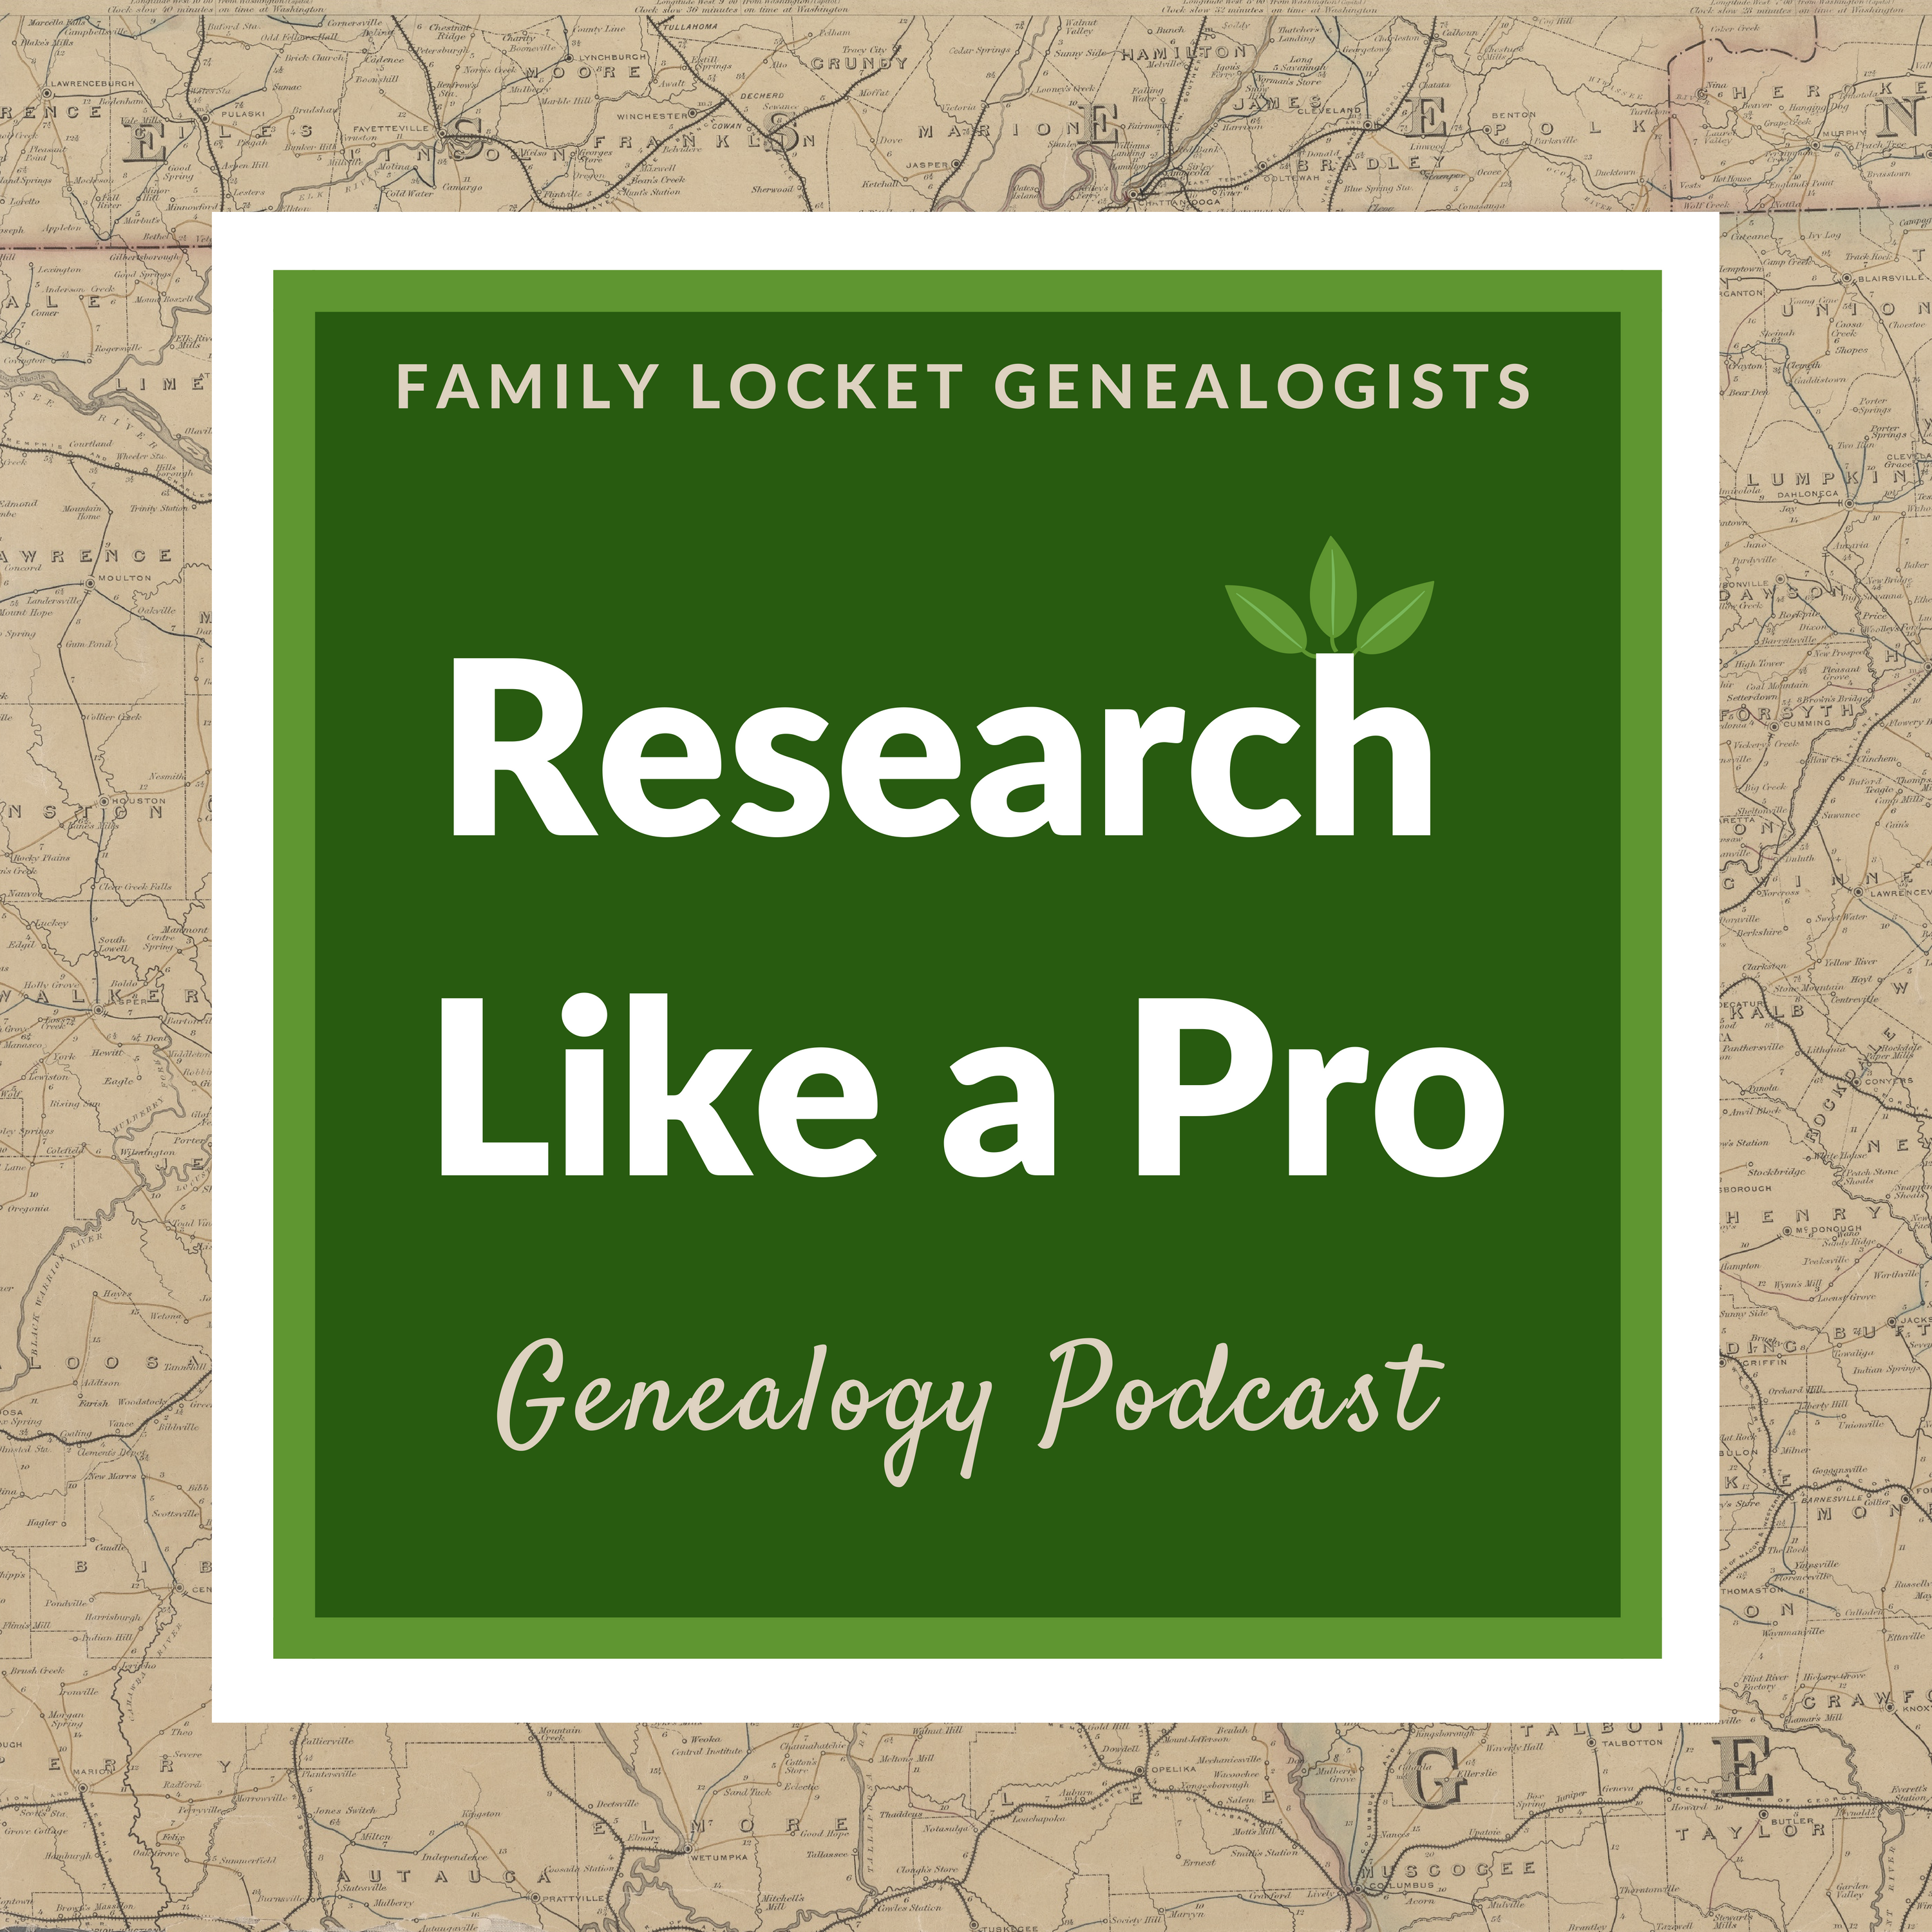 The Research Like a Pro Genealogy Podcast show art